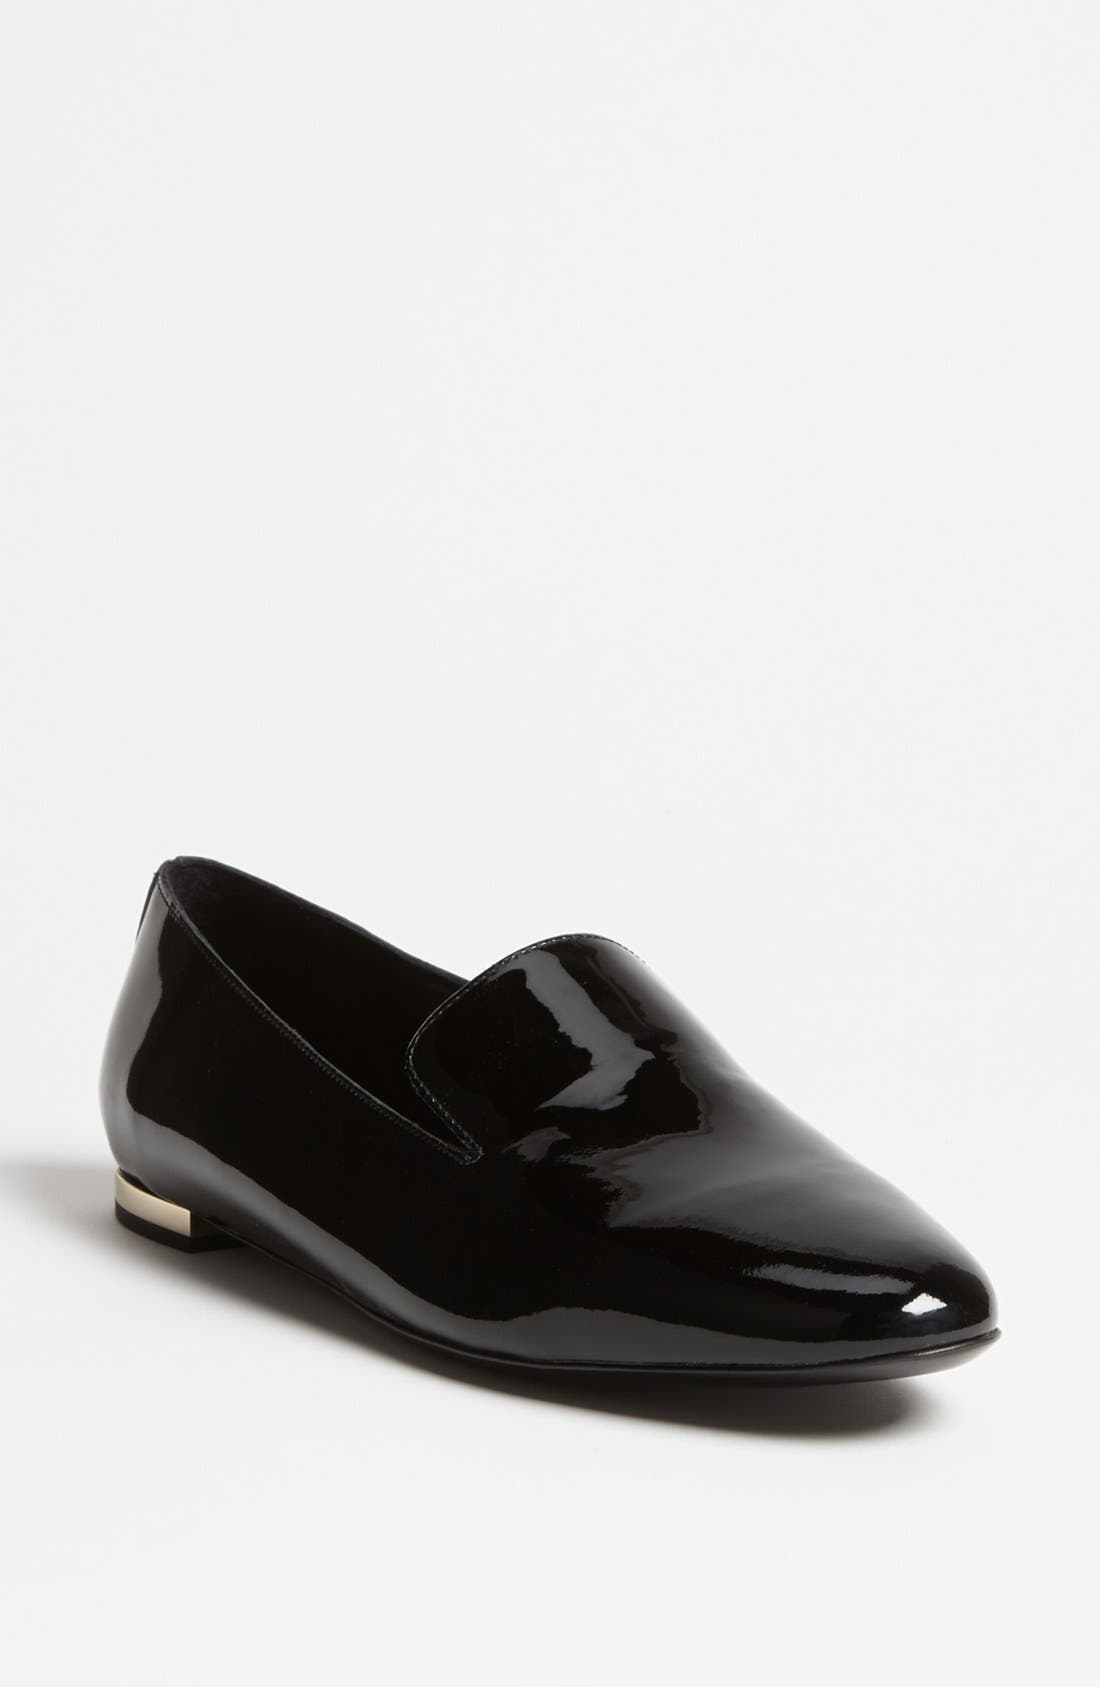 Alternate Image 1 Selected - Burberry 'Mormont' Loafer (Online Only)